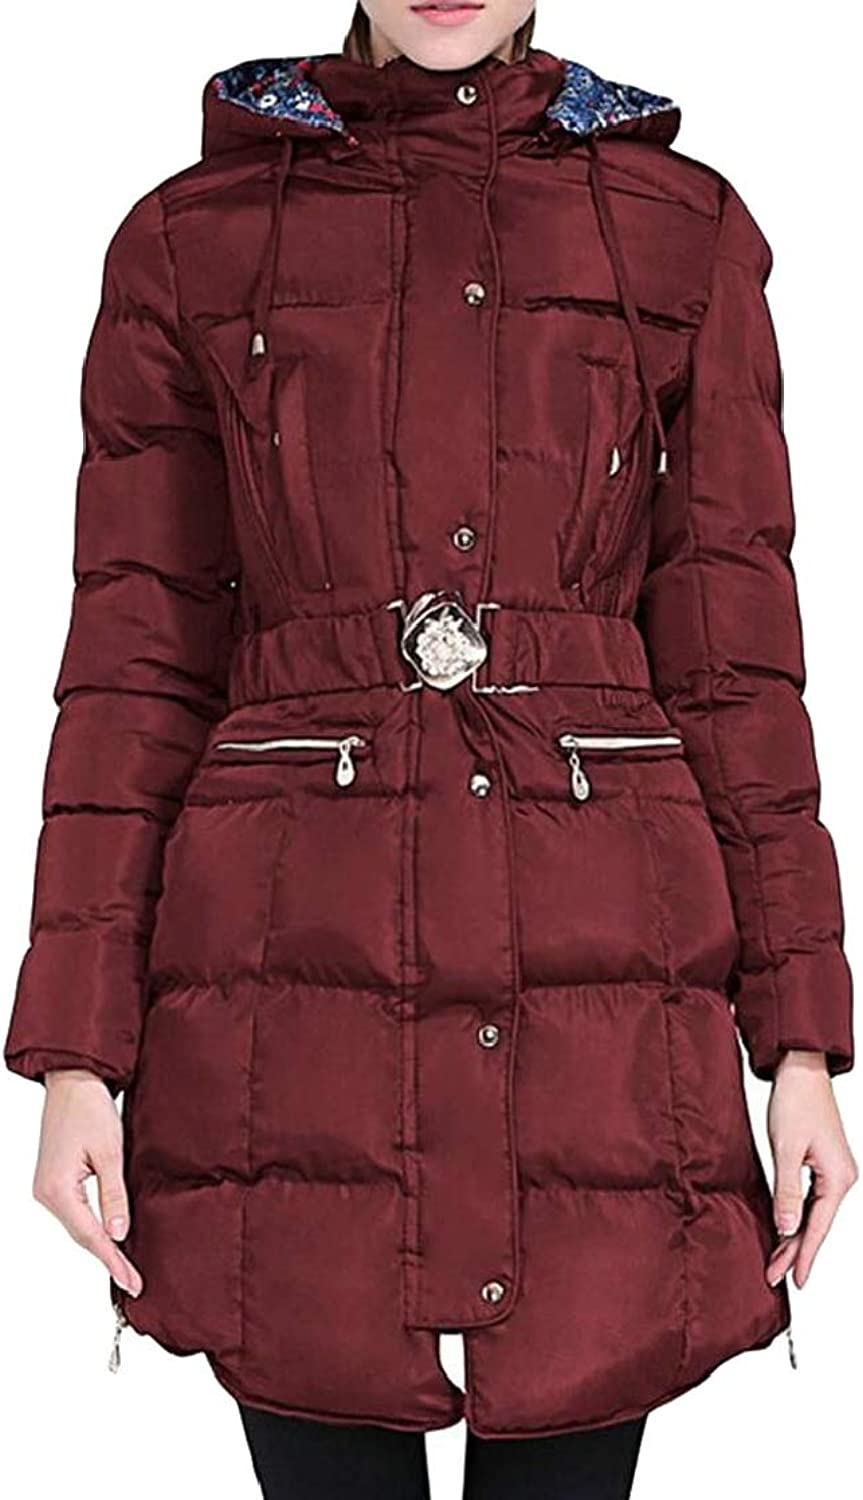 Esast Women Hooded Down Padded Long Winter Warm Parka Outerwear Zipper Jackets